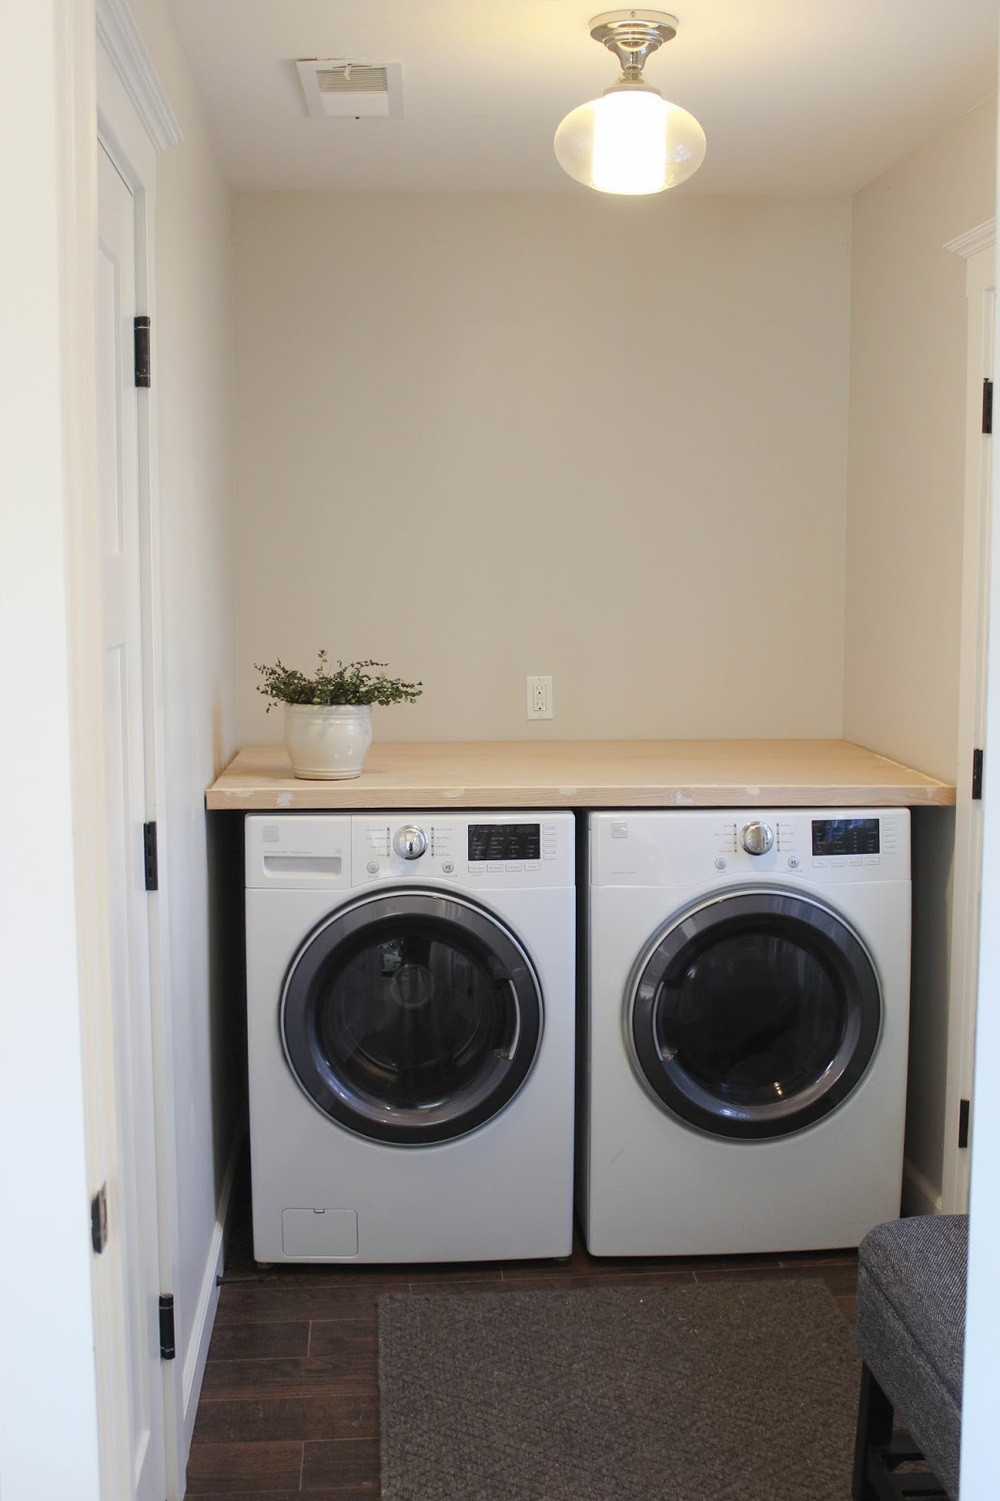 Best ideas about DIY Laundry Room Countertop . Save or Pin DIY Laundry Room Countertop — Katrina Blair Now.